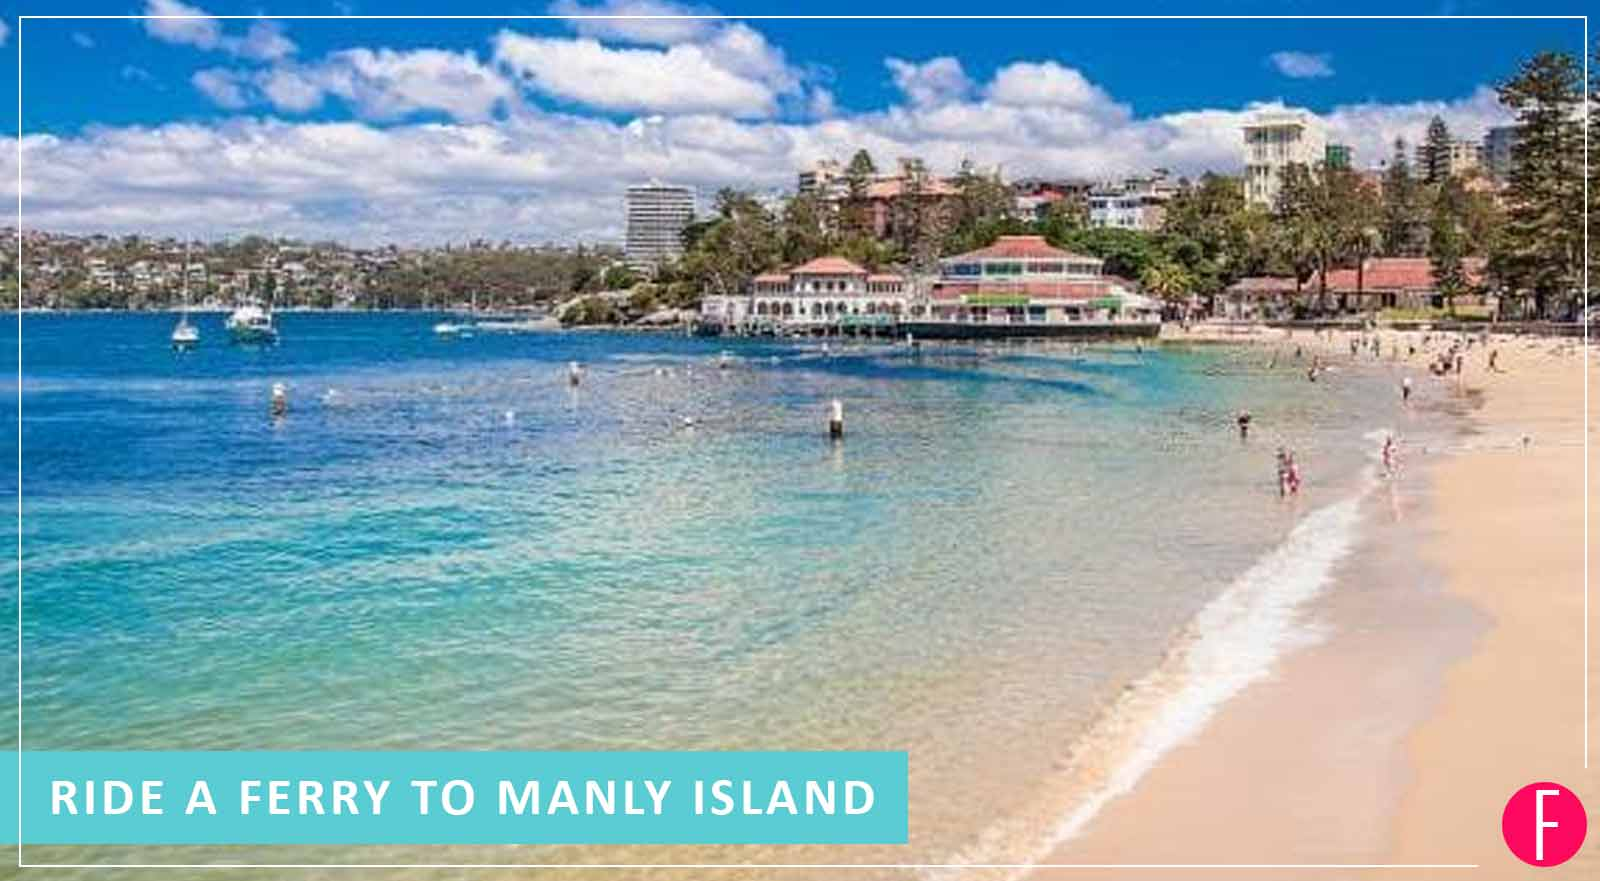 6 SIGHTS TO SEE IN SYDNEY